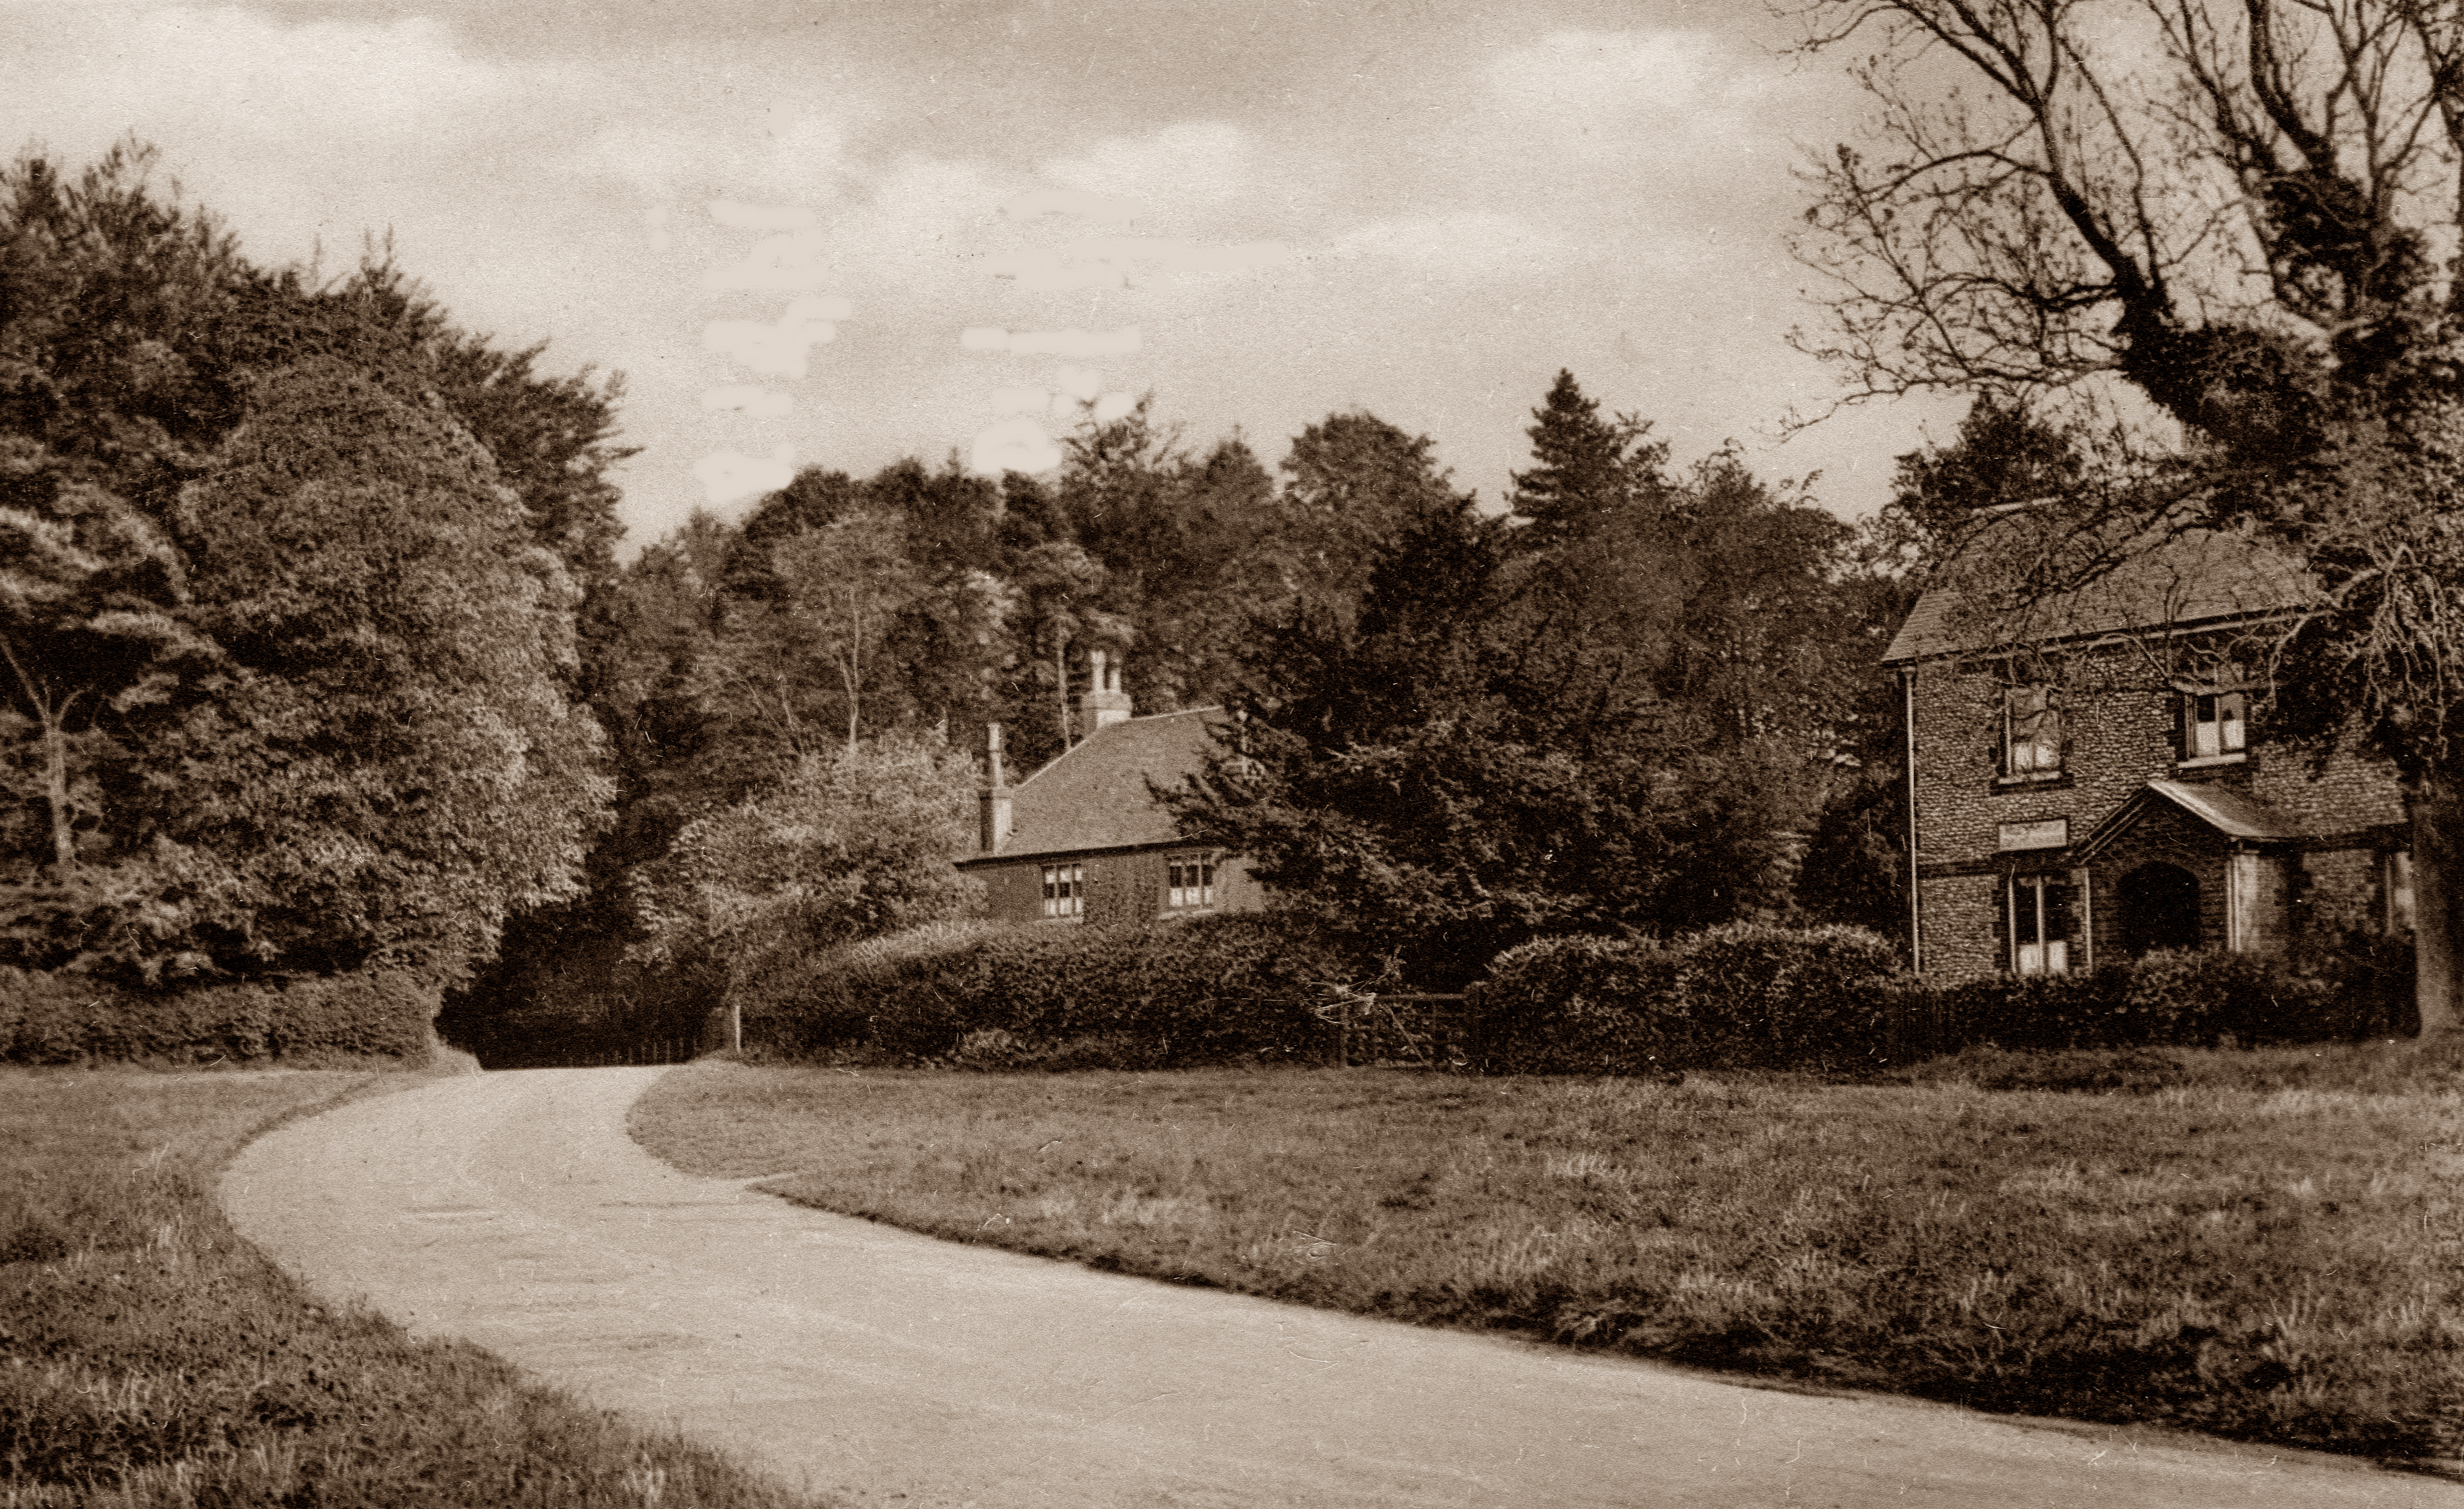 West Cottage in 1922 (Friths, from the postcard collection of Alison Newton)